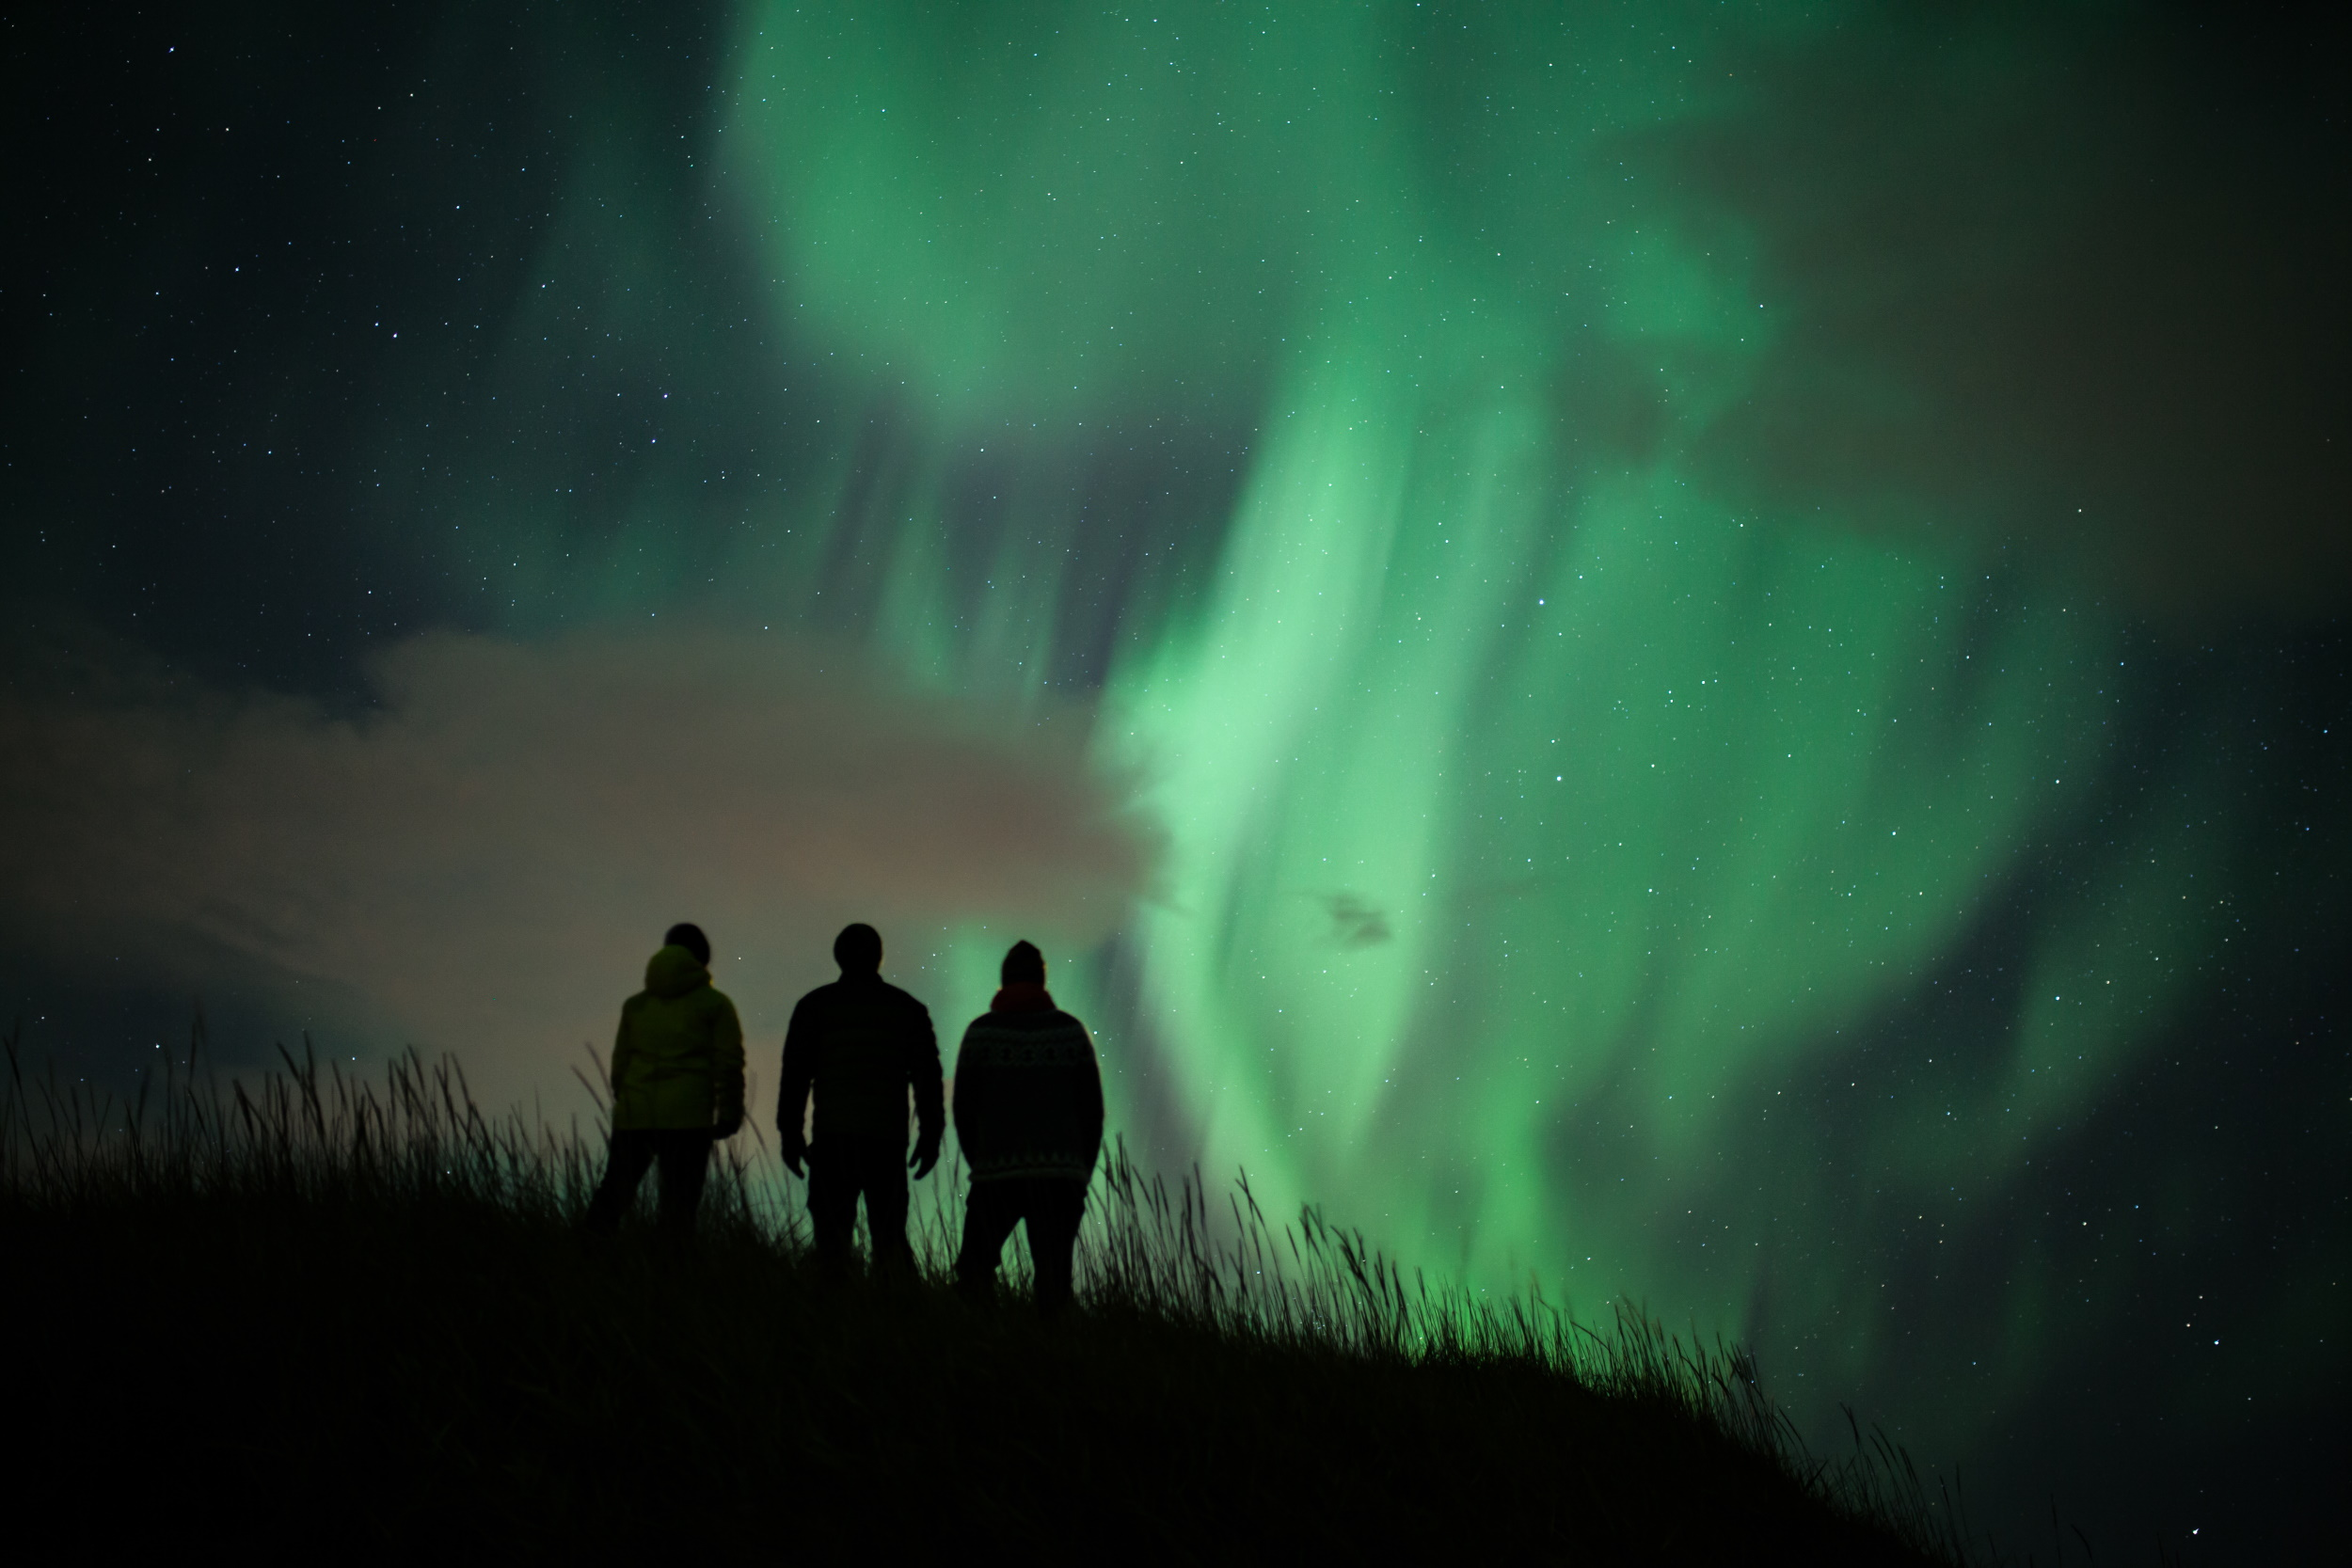 People viewing the Northern lights in Iceland